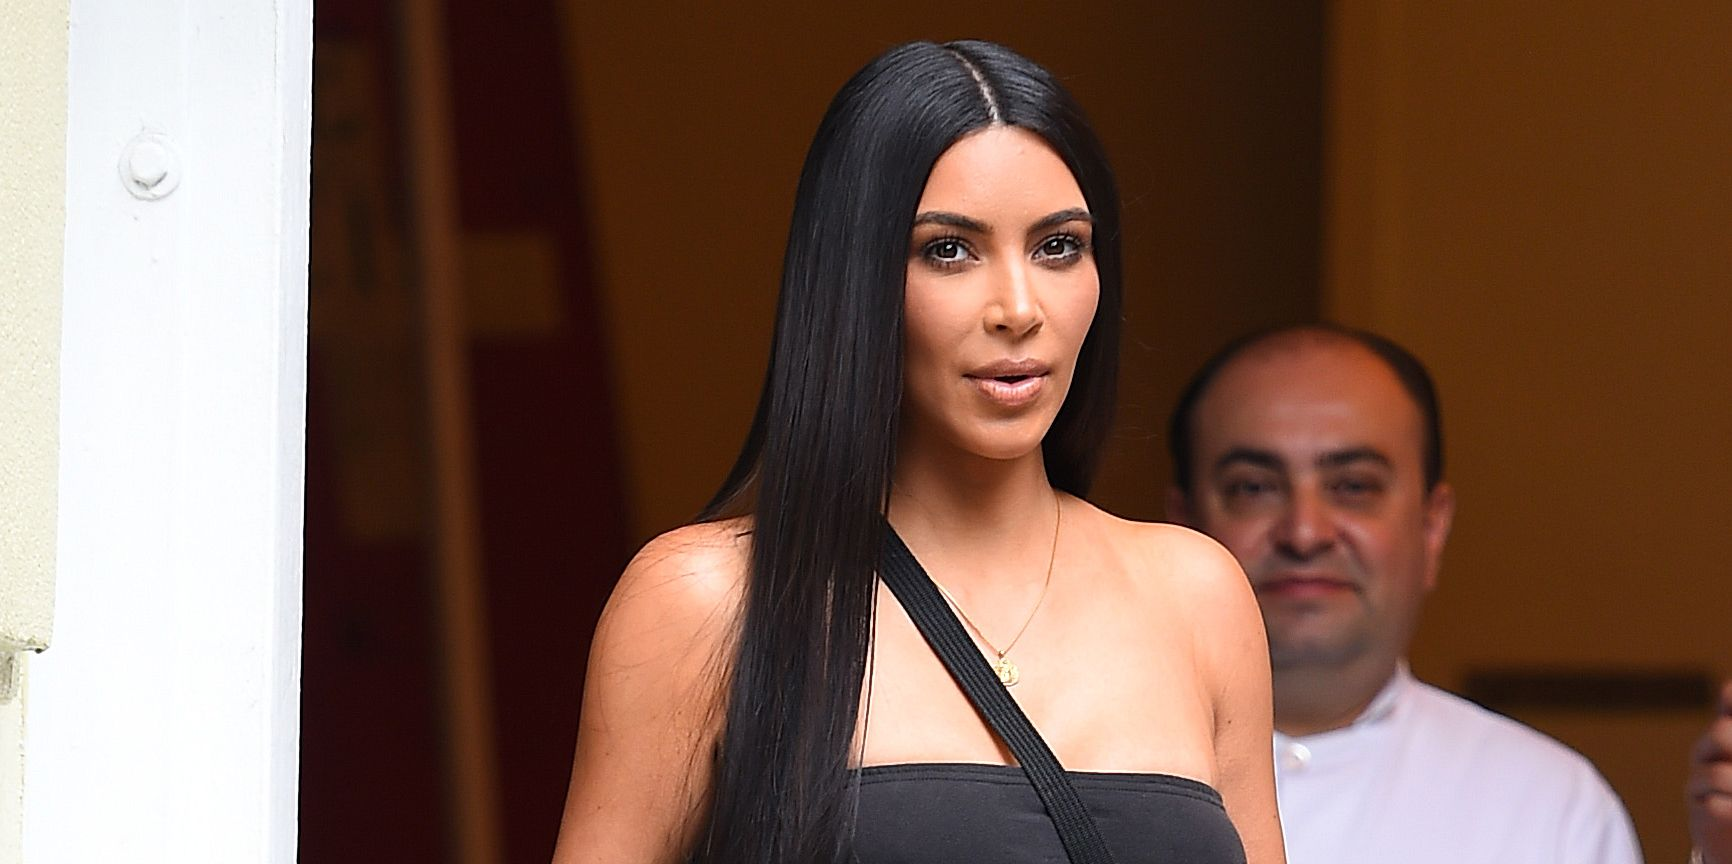 Kim Kardashian Shared Some Nude Photos in the Name of Art